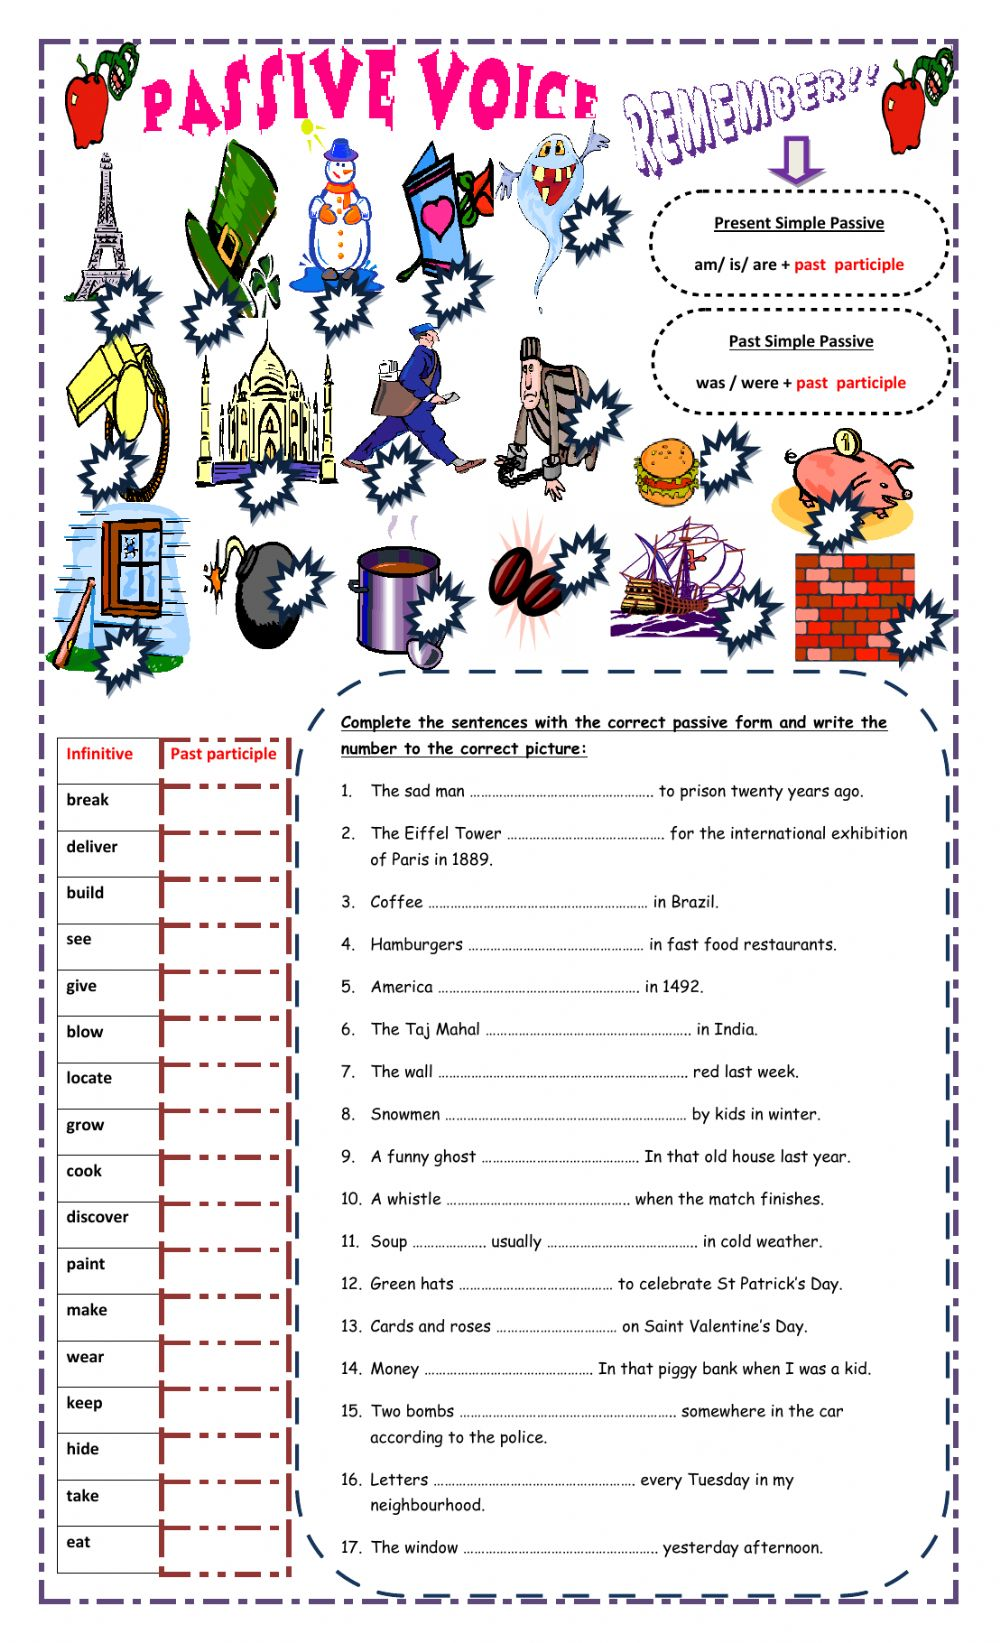 Present simple and past simple passive voice interactive worksheet ibookread PDF